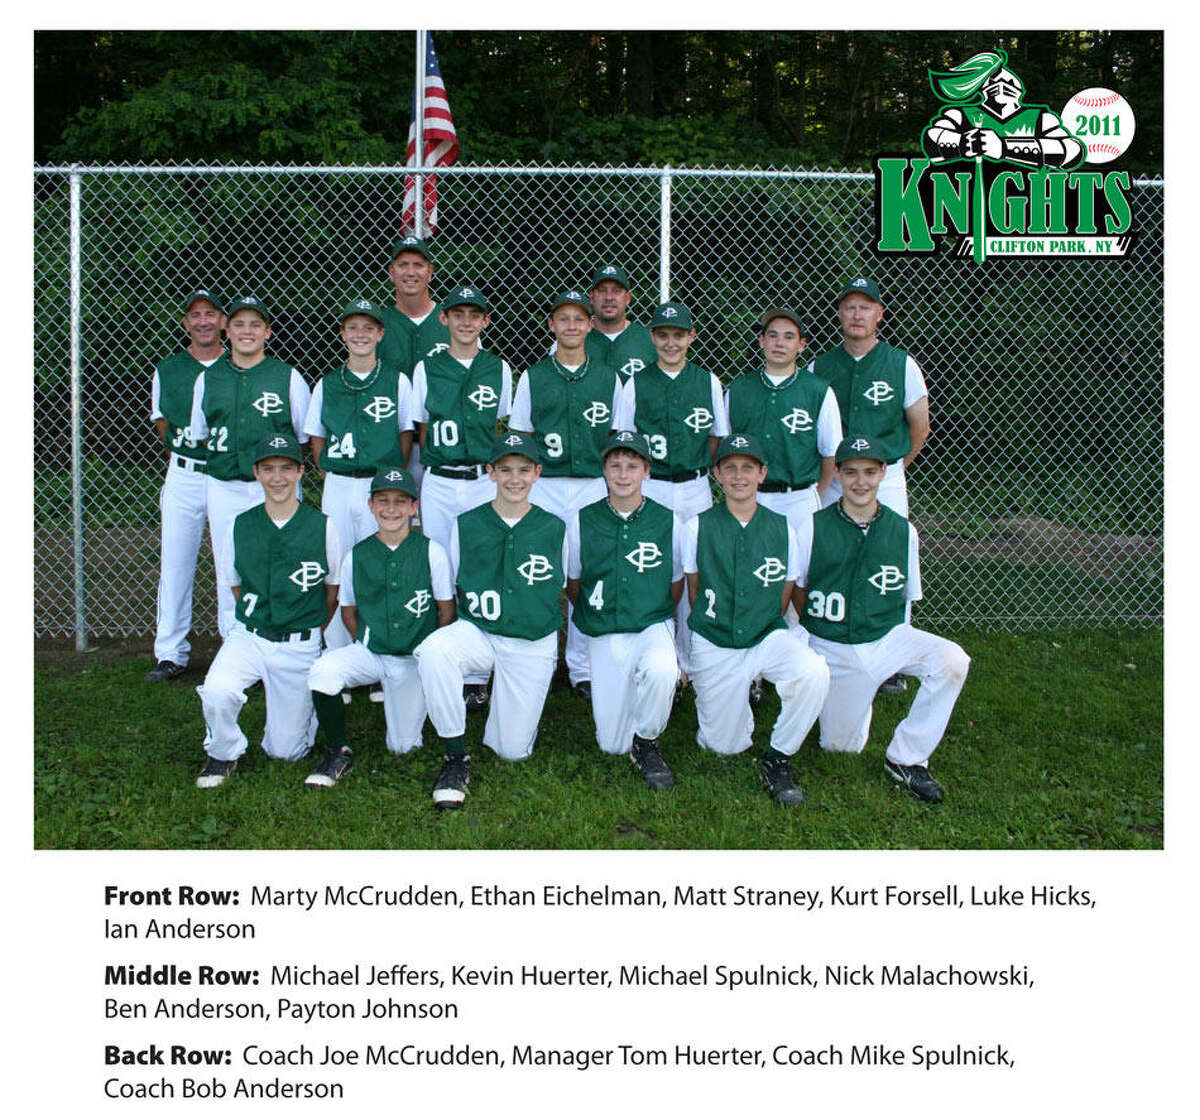 Ian Anderson and Kevin Huerter were part of an under-12 baseball team, the Clifton Park Knights, which played in the Cal Ripken League World Series in Maryland in 2011.